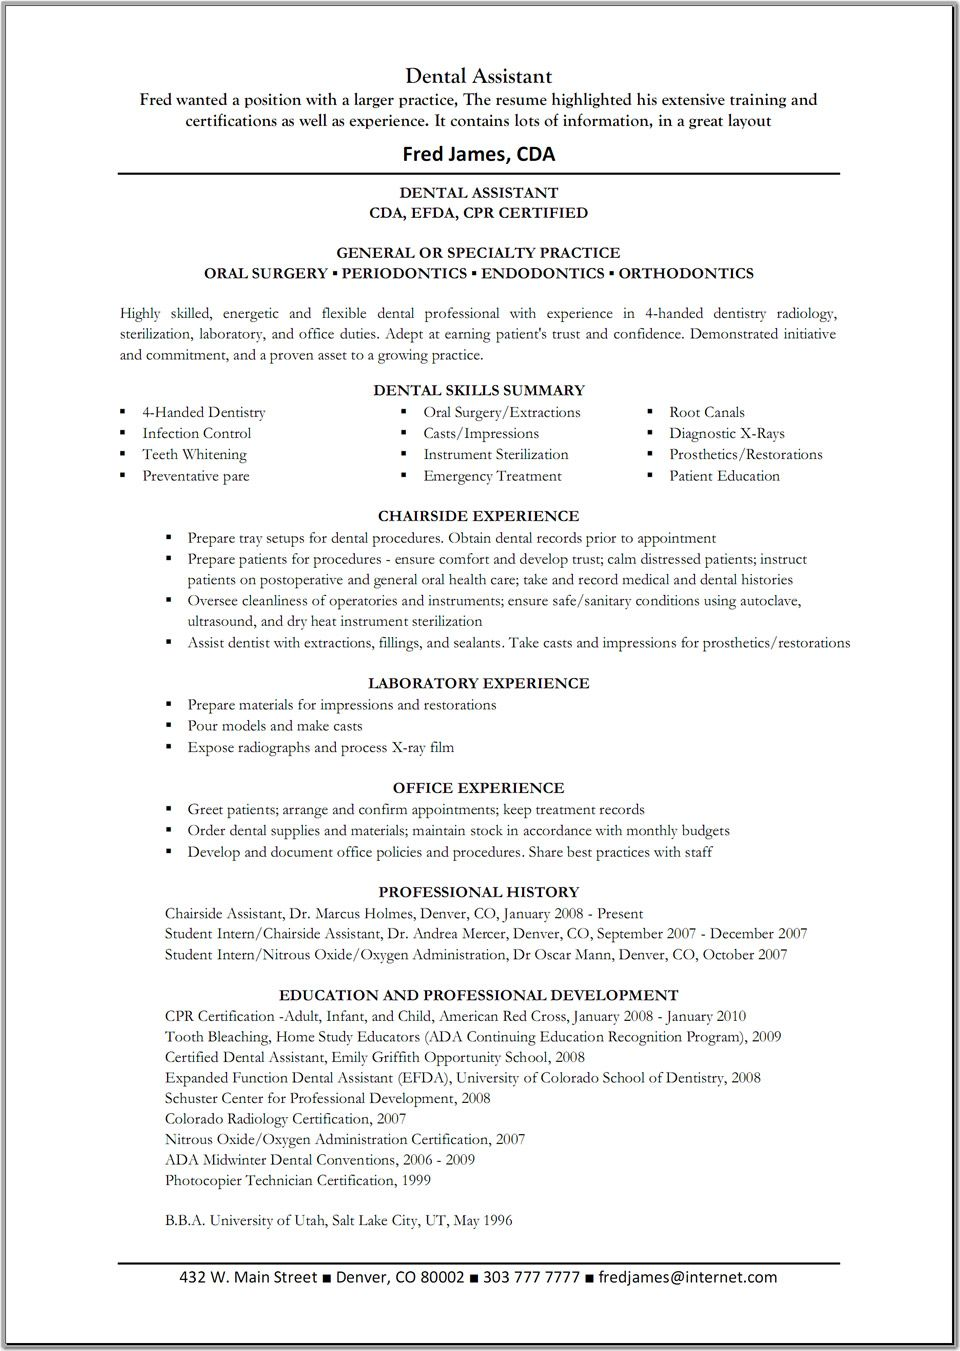 How To Prepare A Resume Gorgeous Dental Assistant Resume Template  Great Resume Templates  Dental